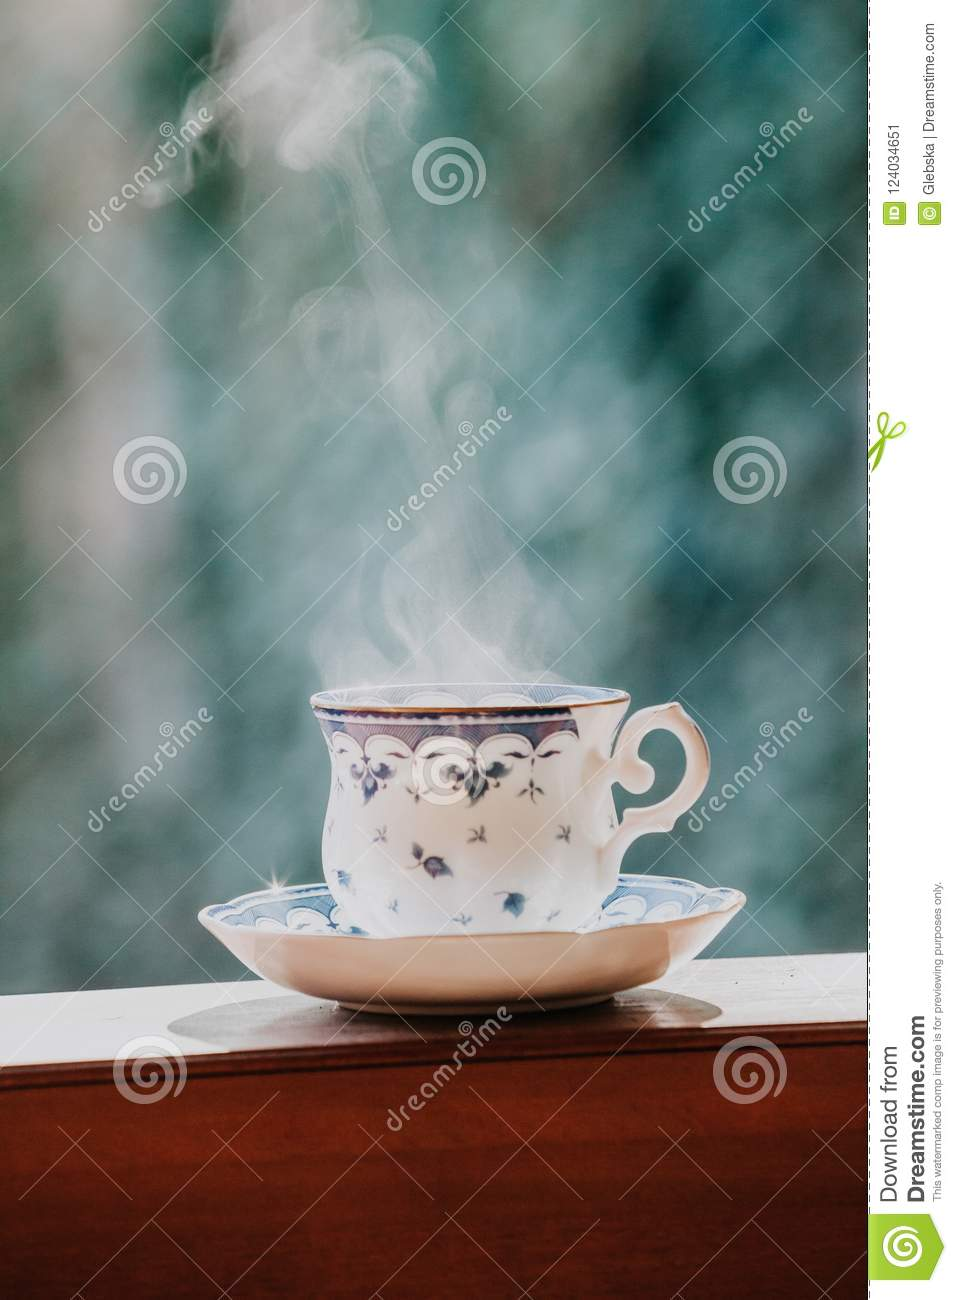 Elegant Tea Cup And Stand Shelf Stock Image Image Of Wood Saucer